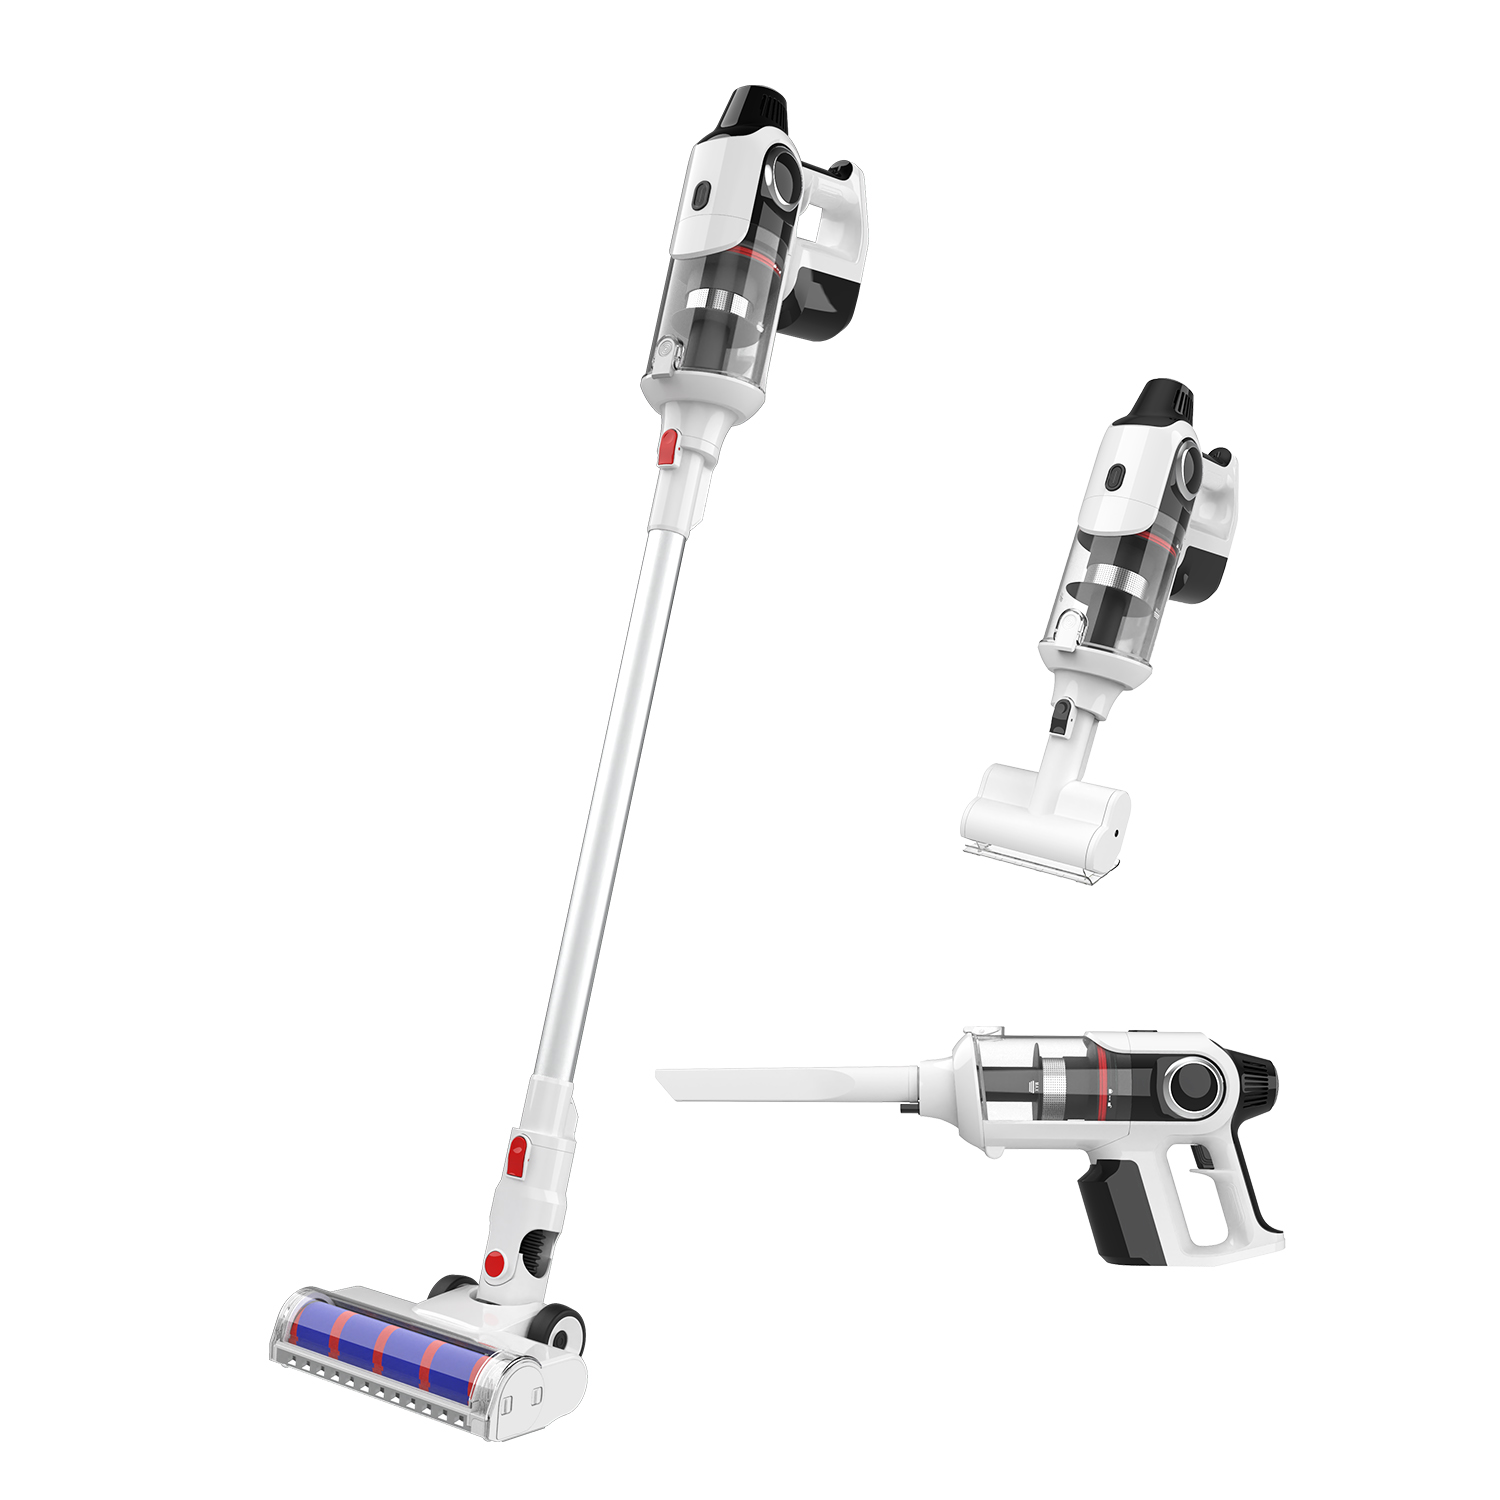 300W Powered Cordless Rechargeable Stick vacuum cleaner low noise vacuum cleaner for sale